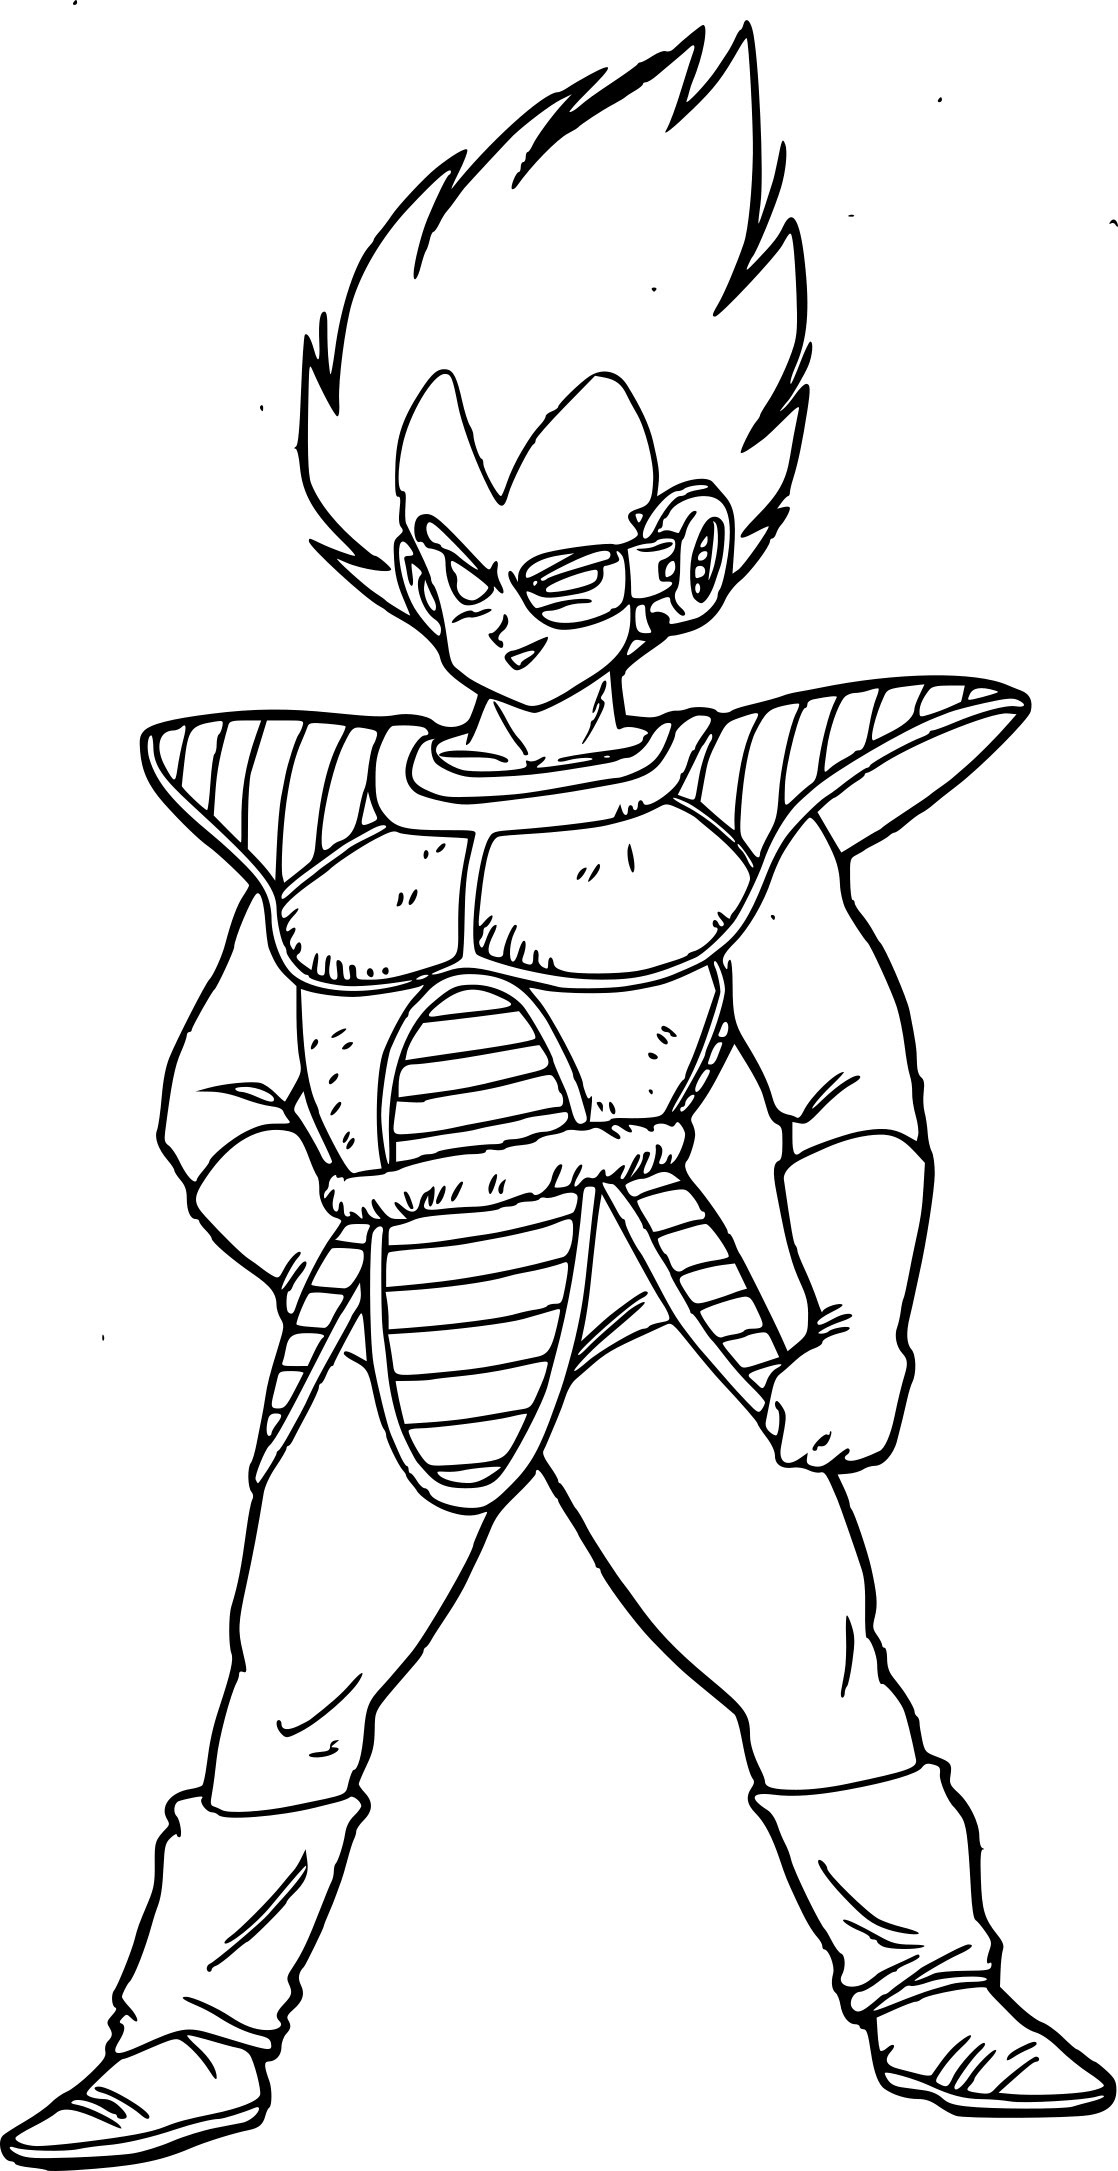 Coloriage Dragon Ball Vegeta à Imprimer Sur Coloriages Info